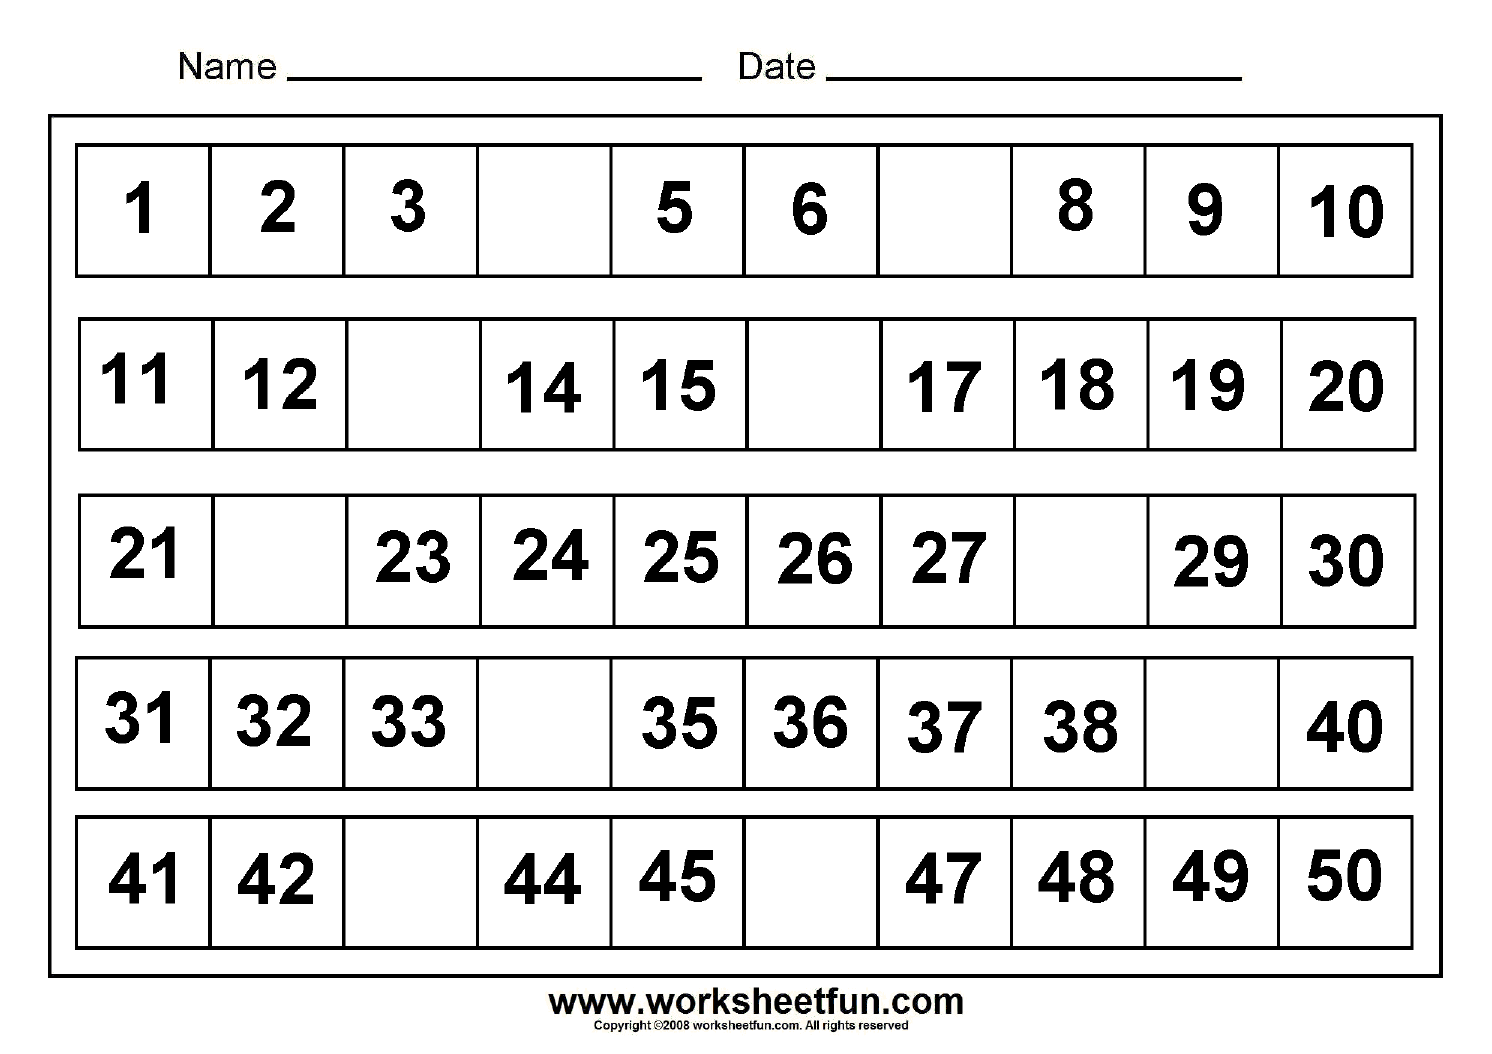 Worksheets Number Tracing Worksheets 1-30 pin by 13376614605 mohammed on adam pinterest writing numbers number